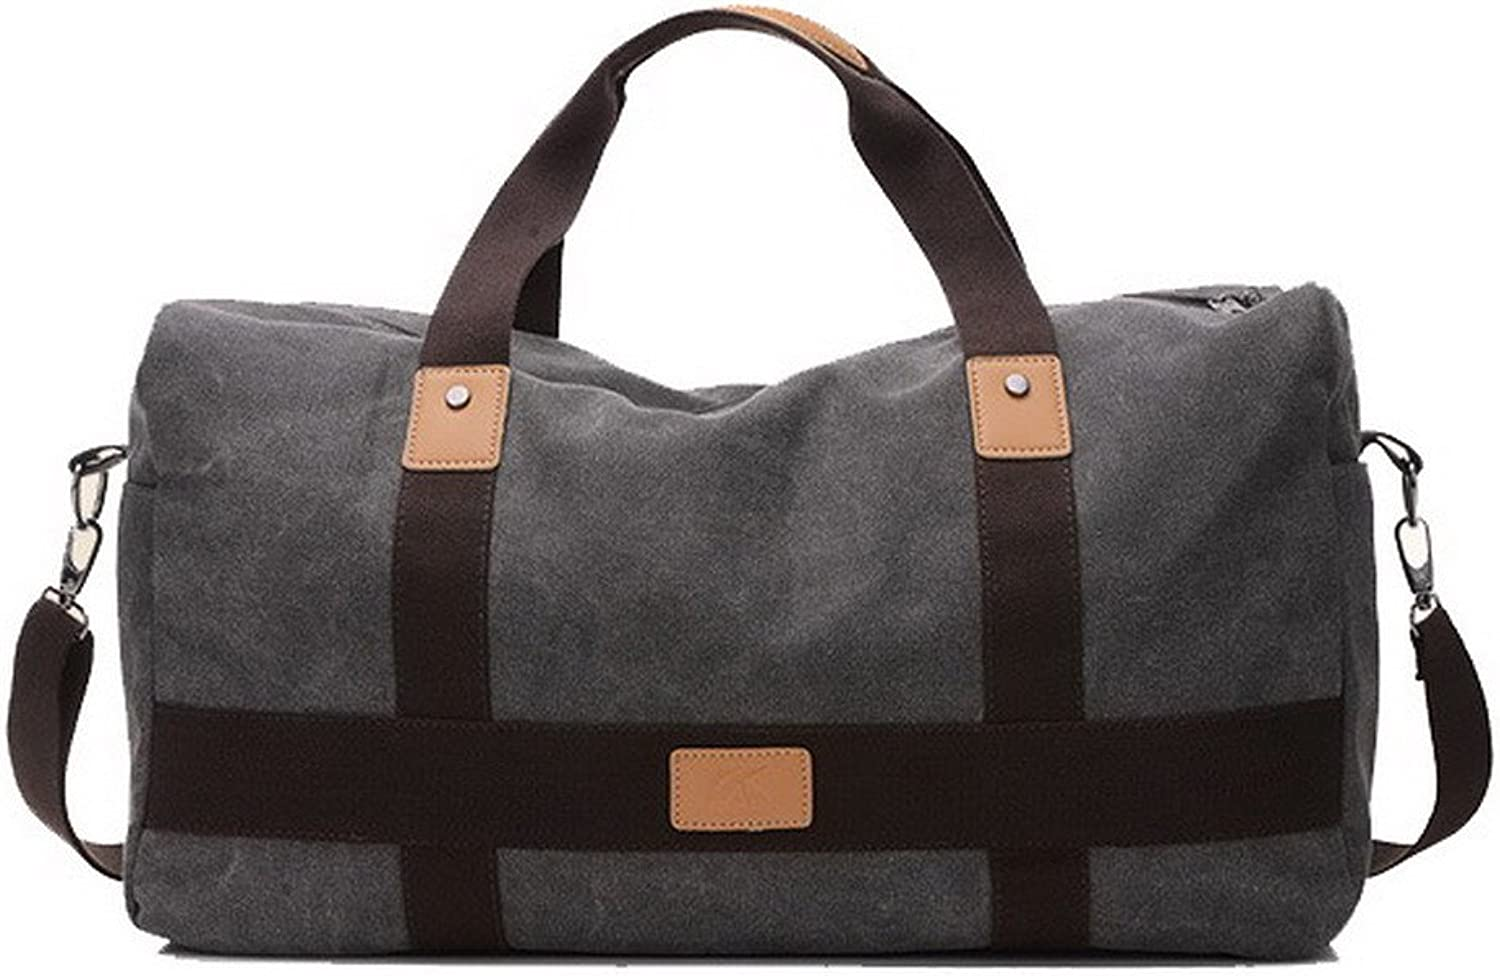 AmoonyFashion Women's Travel Canvas Travel Totes Tote-Style Shoulder Bags, BUTBS181460